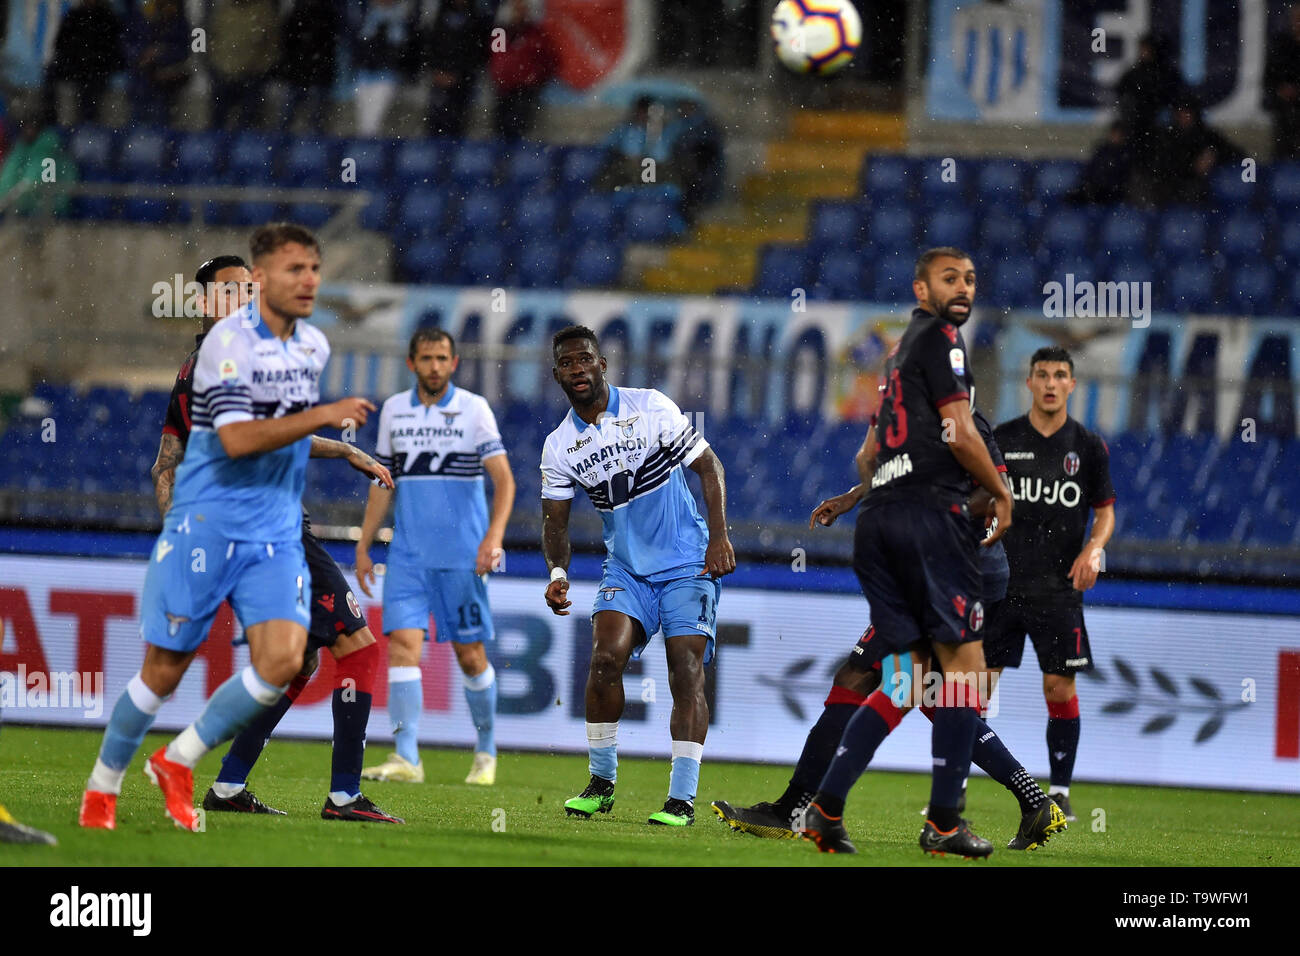 Rome, Italy. 21st May, 2019. Serie A Lazio vs Bologna Stadio Olimpico.Rome 20-05-2019 In the picture Bartolomeu's goal Jacinto Quissanga Bastos Photo Photographer01 Credit: Independent Photo Agency/Alamy Live News - Stock Image